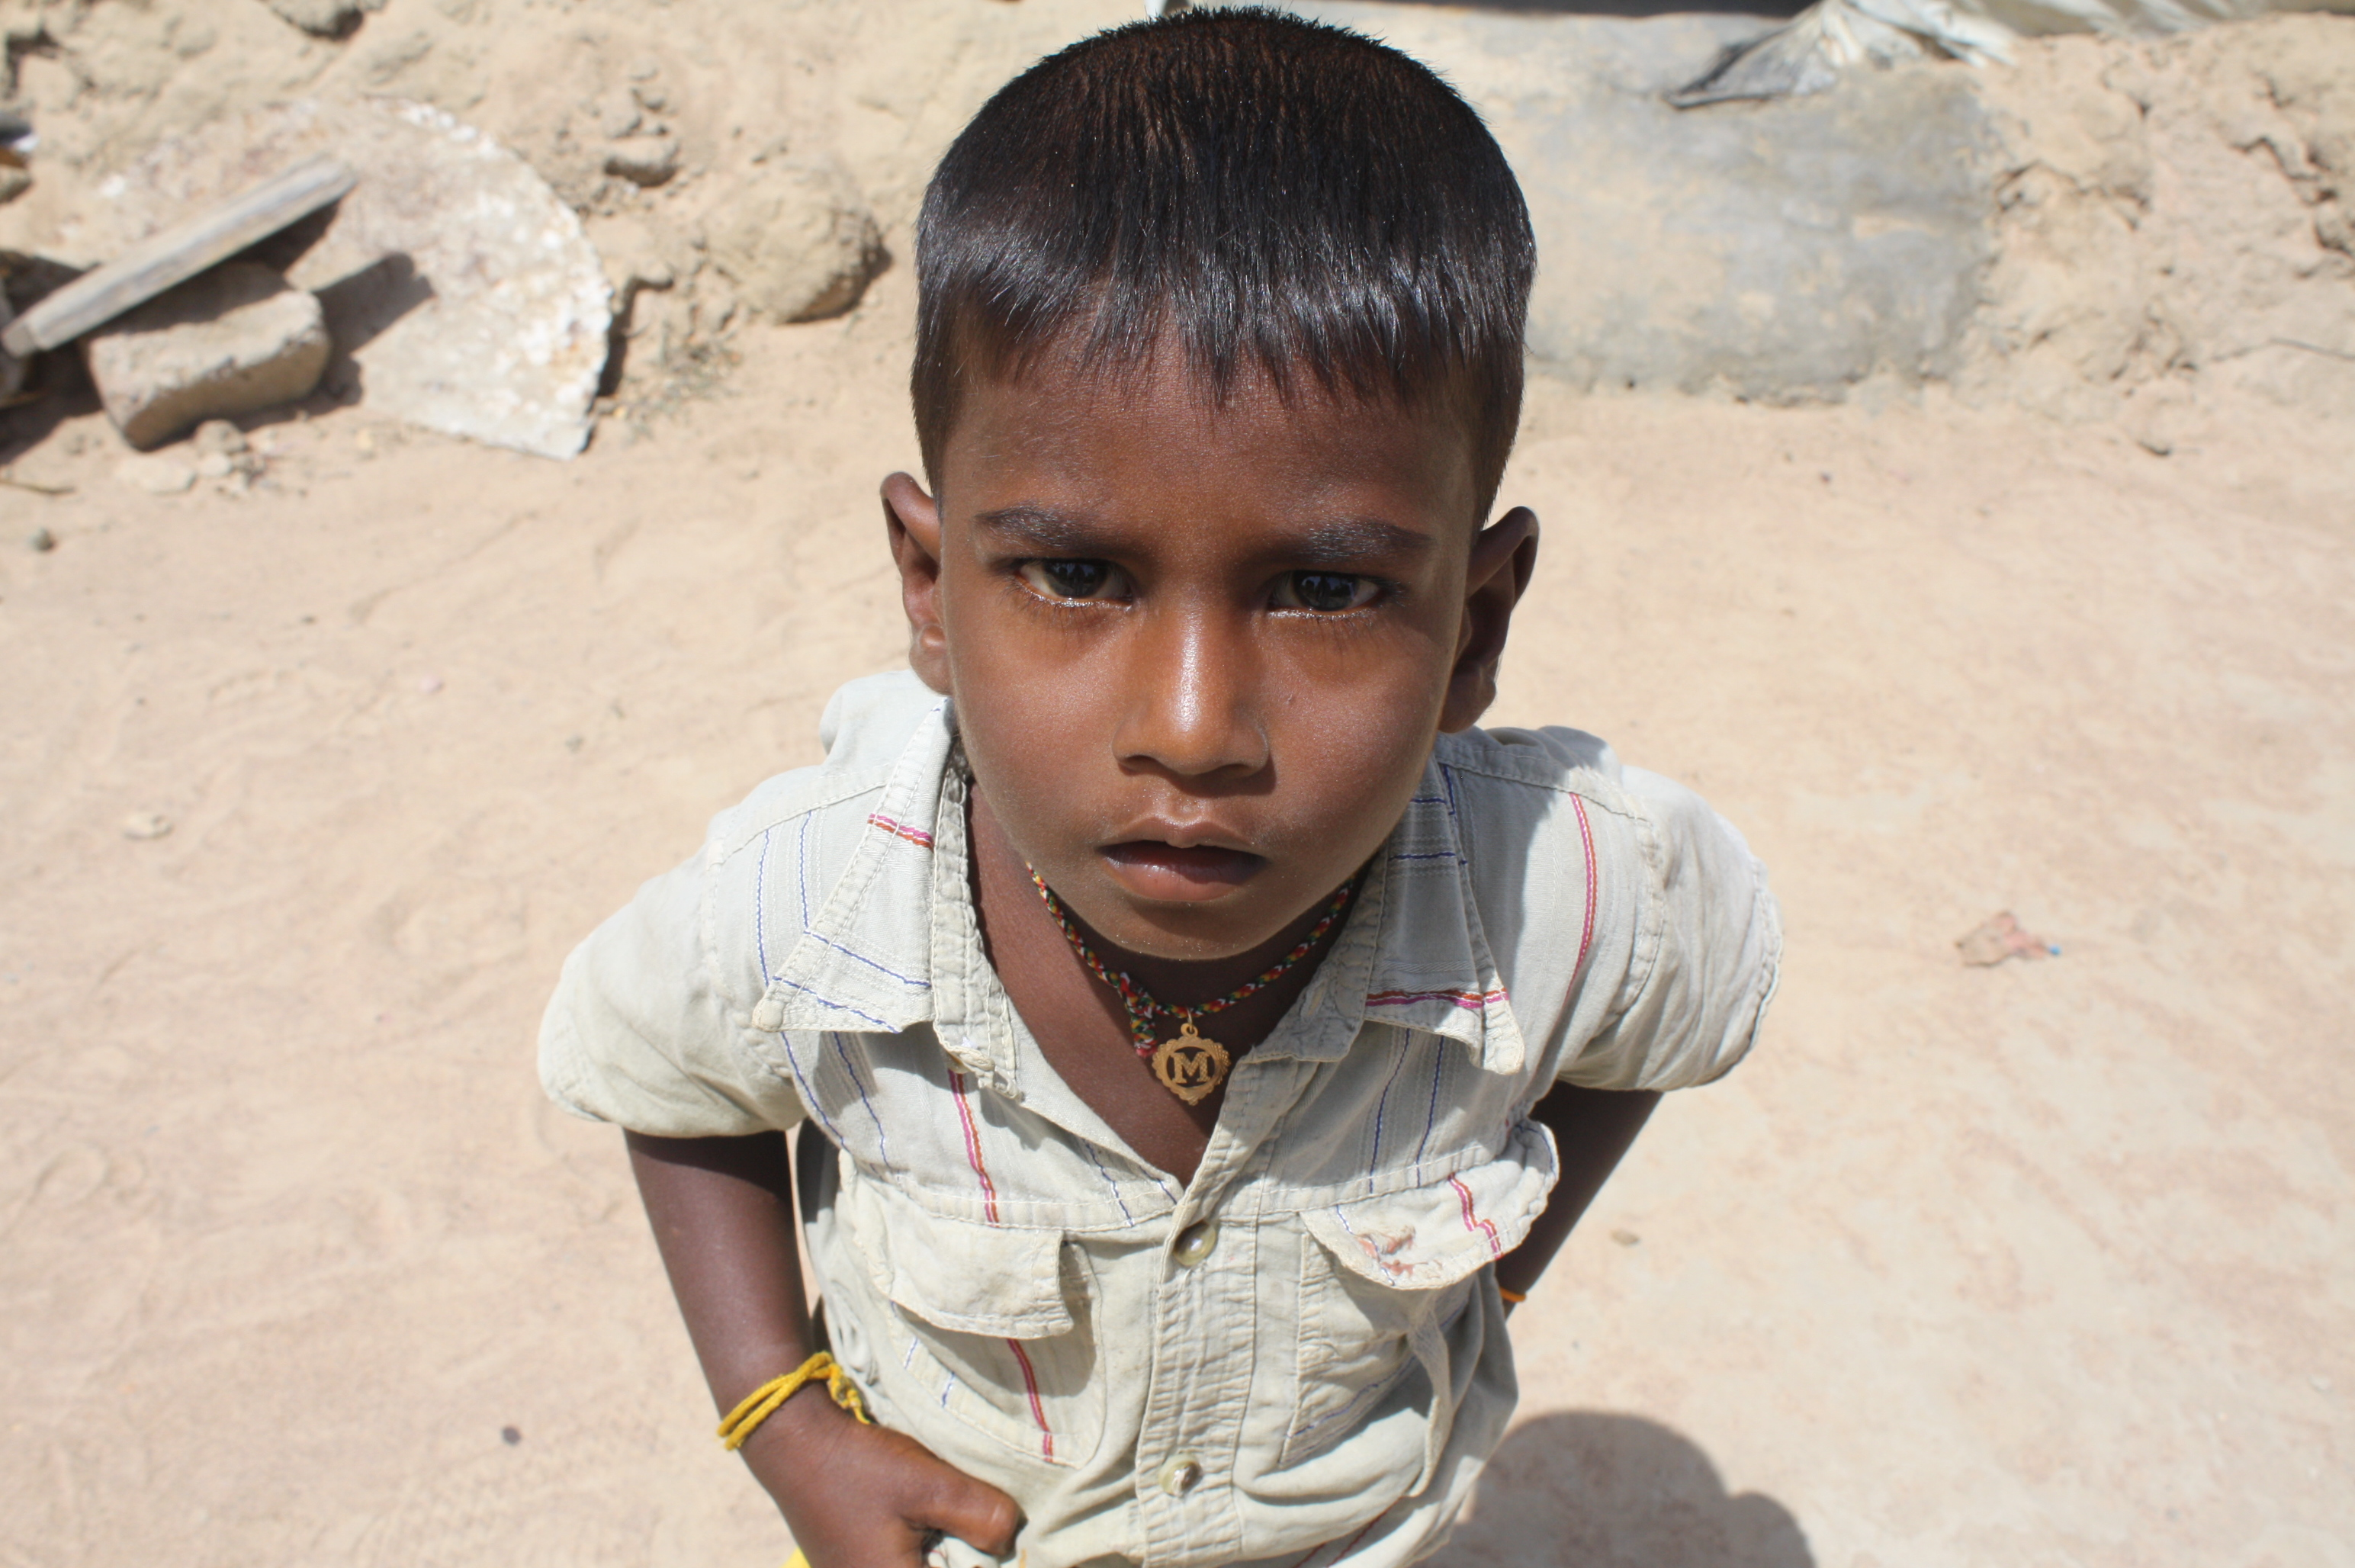 A young boy looks to the camera in the village of Malayalapuram outside Kilinochchi. Thousands of conflict-displaced have returned to the area since the end of Sri Lanka's decades-long war which ended in May 2009